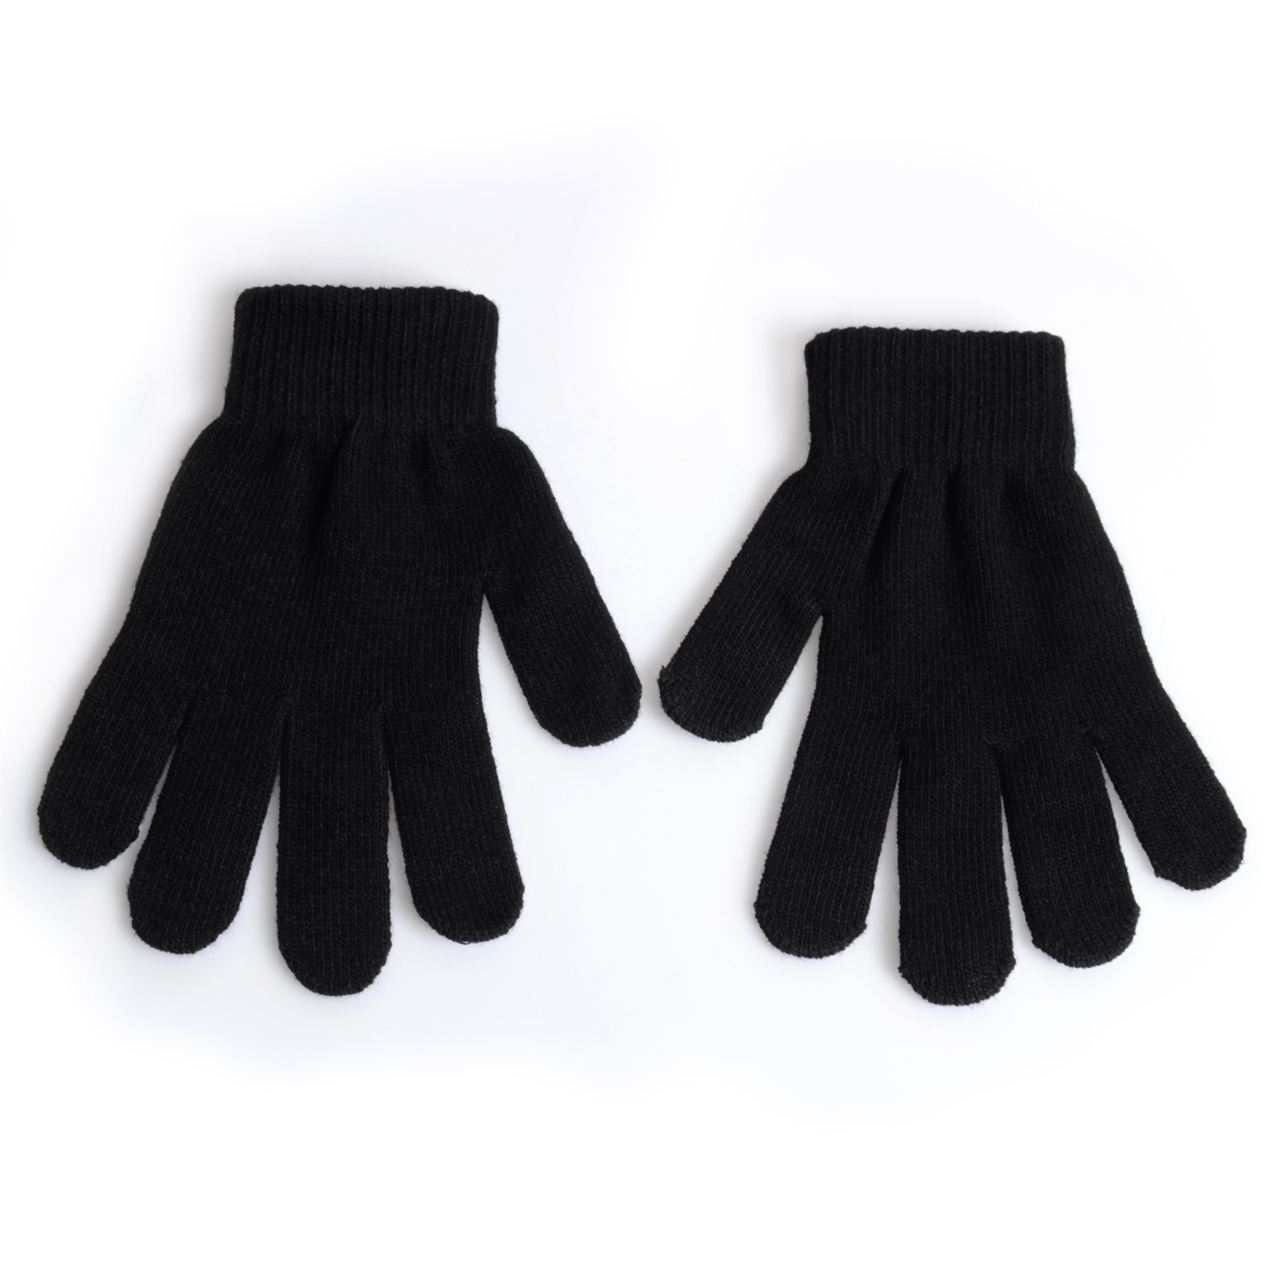 YouSave Accessories Touch Screen Gloves - Black